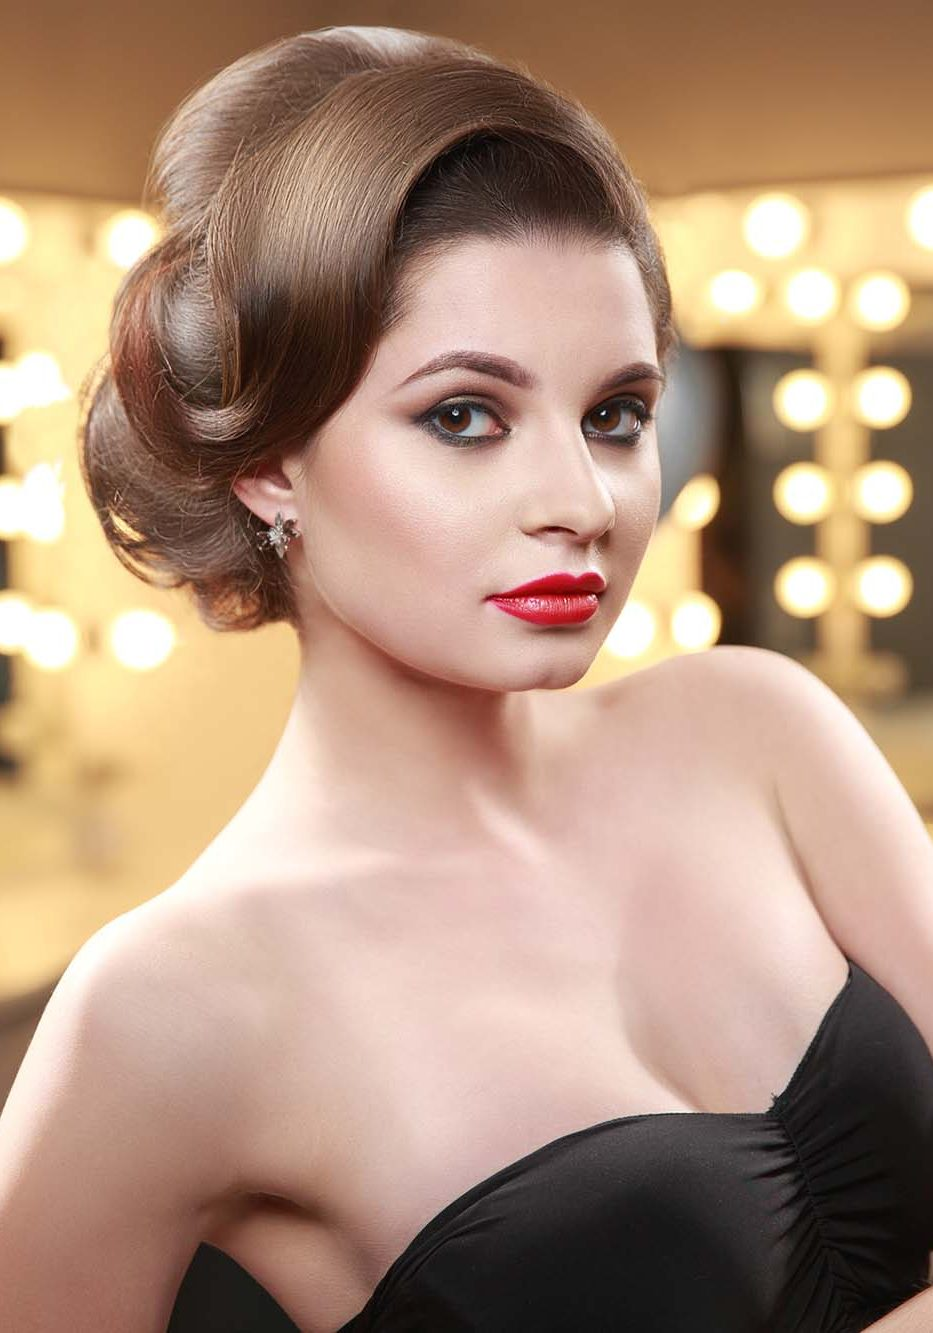 Woman with elegant hair style in evening dress.